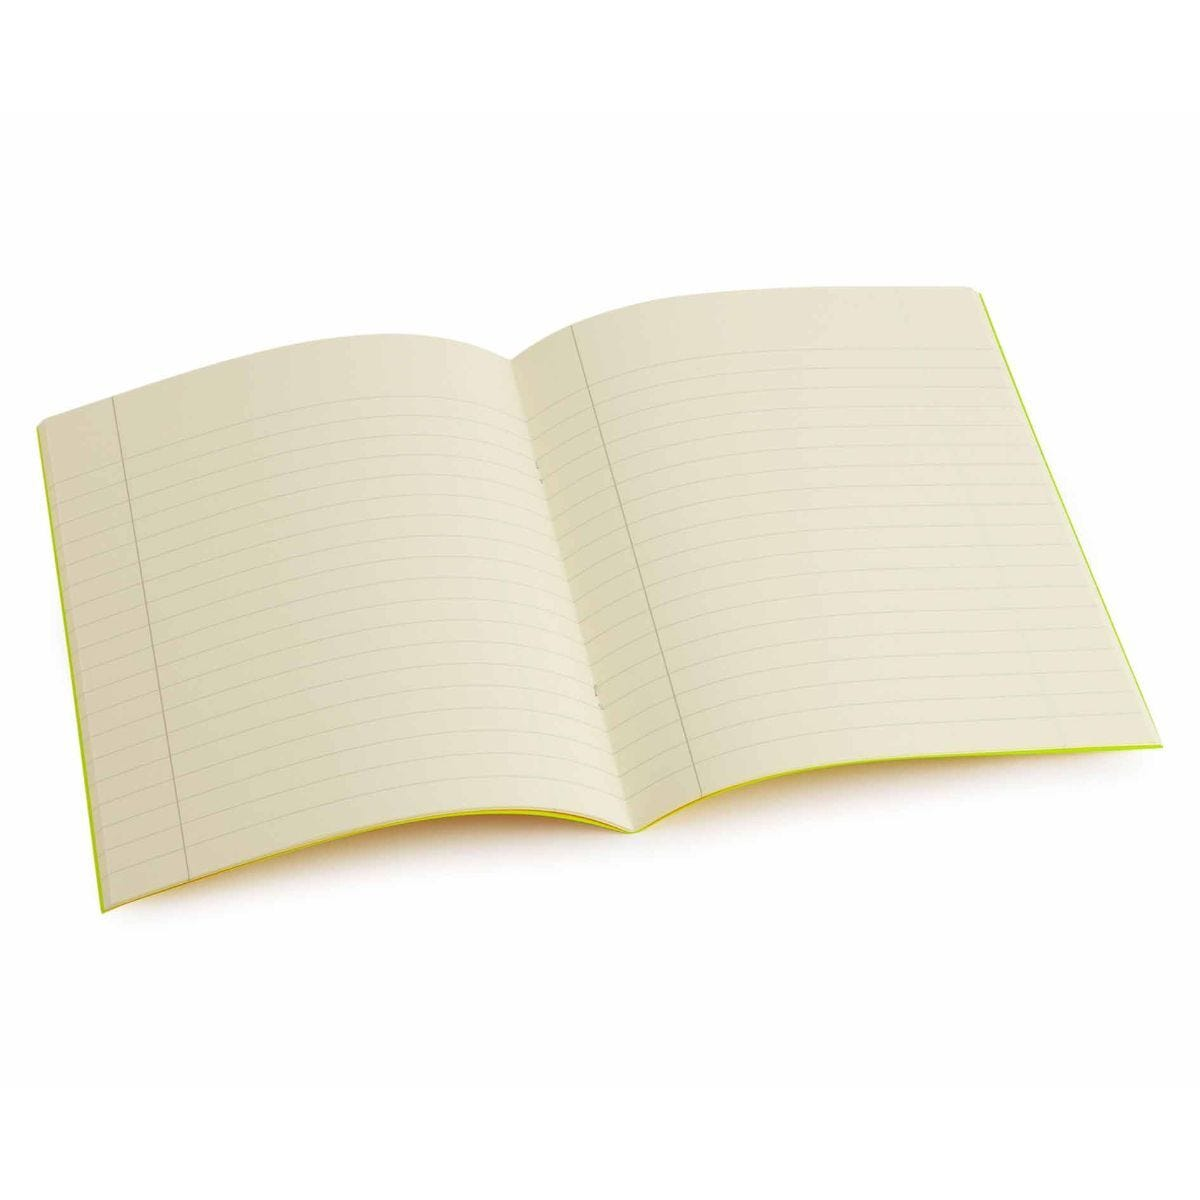 Tinted Exercise Book Standard 7x9 Lined 10mm Cream